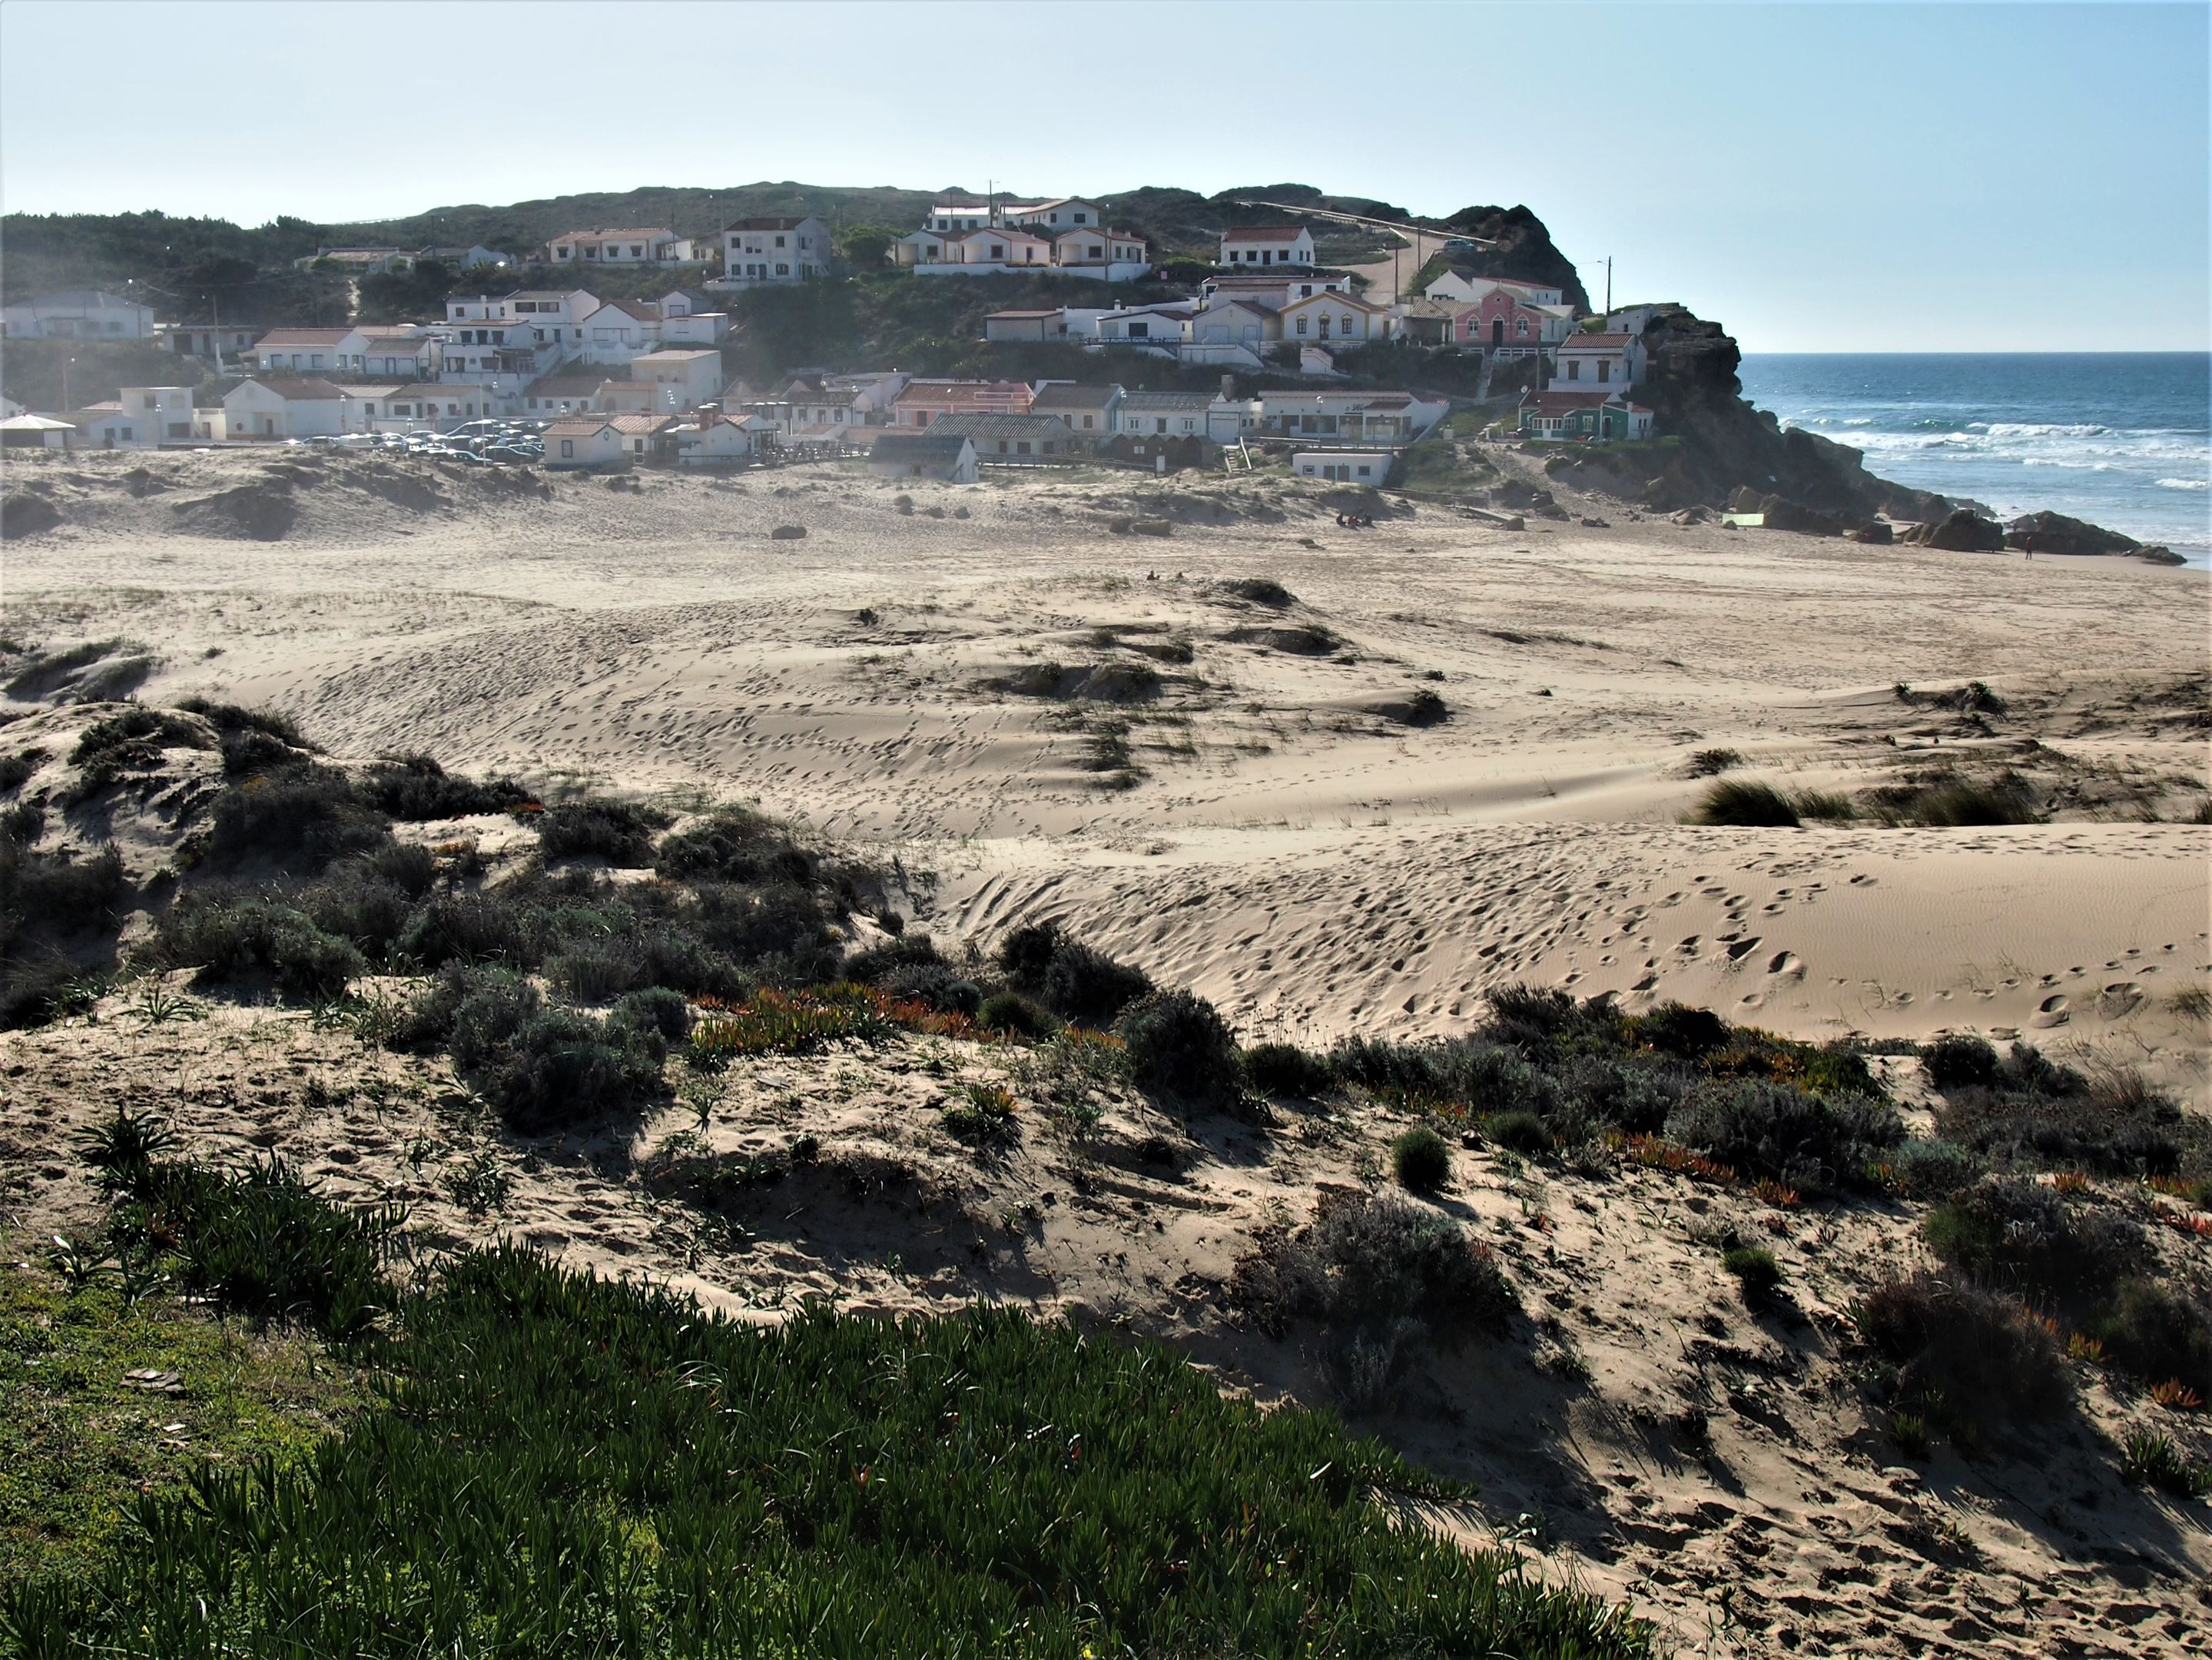 Praia do Monte Clérigo, with the small village in the background, Aljezur region